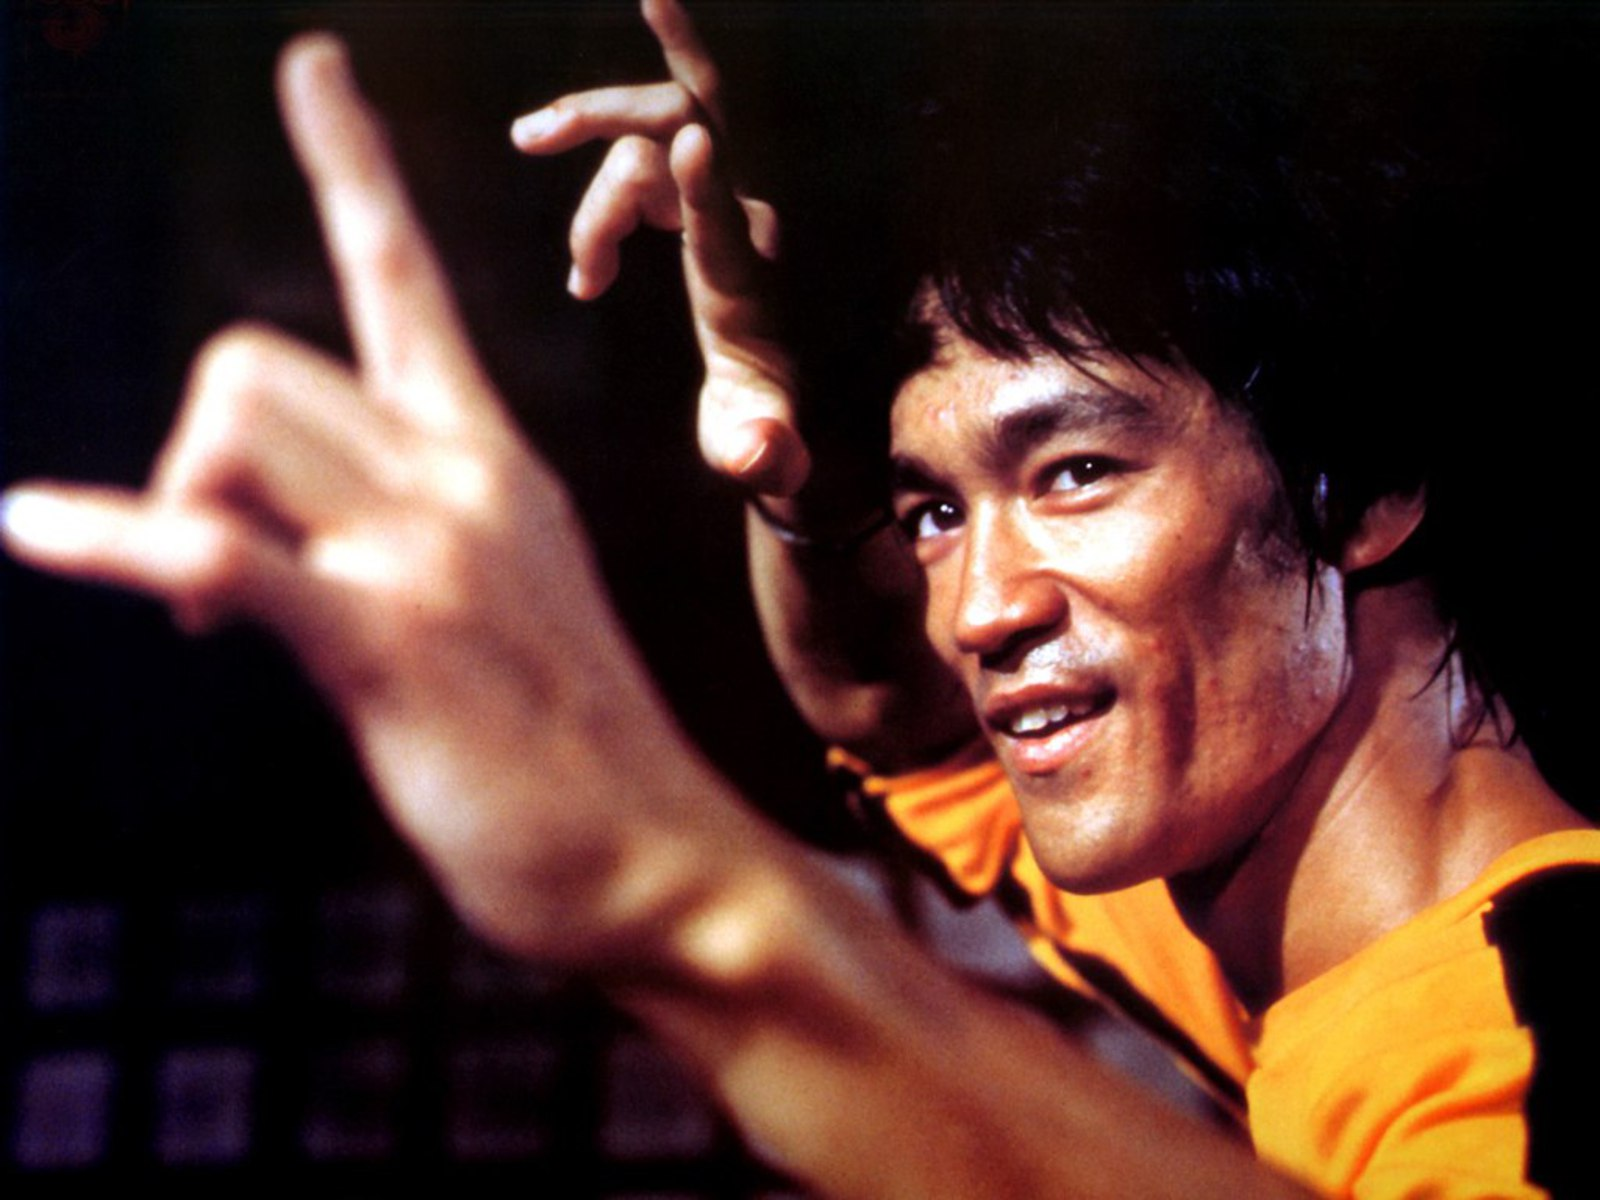 bruce lee and his martial arts The grace, balance and entertaining nature of bruce's dancing skills, coupled with his martial arts power and fluidity, made for a mesmerizing combination in his future films bruce lee and his son, brandon lee.